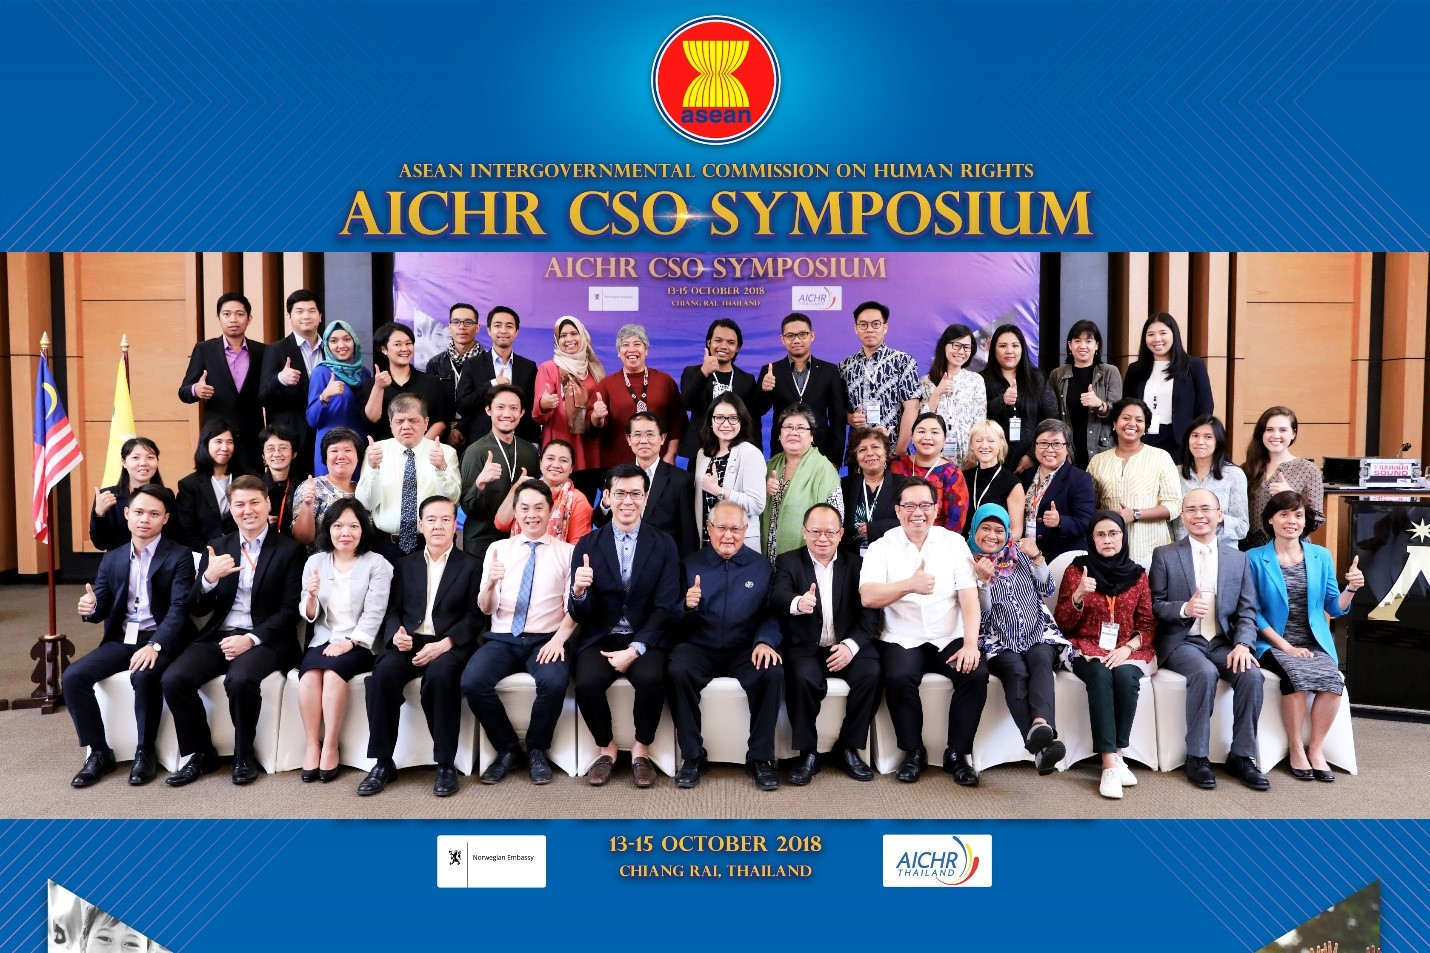 AICHR CSO Symposium 2018: Enhancing CSO Engagement With ASEAN Human Rights Bodies